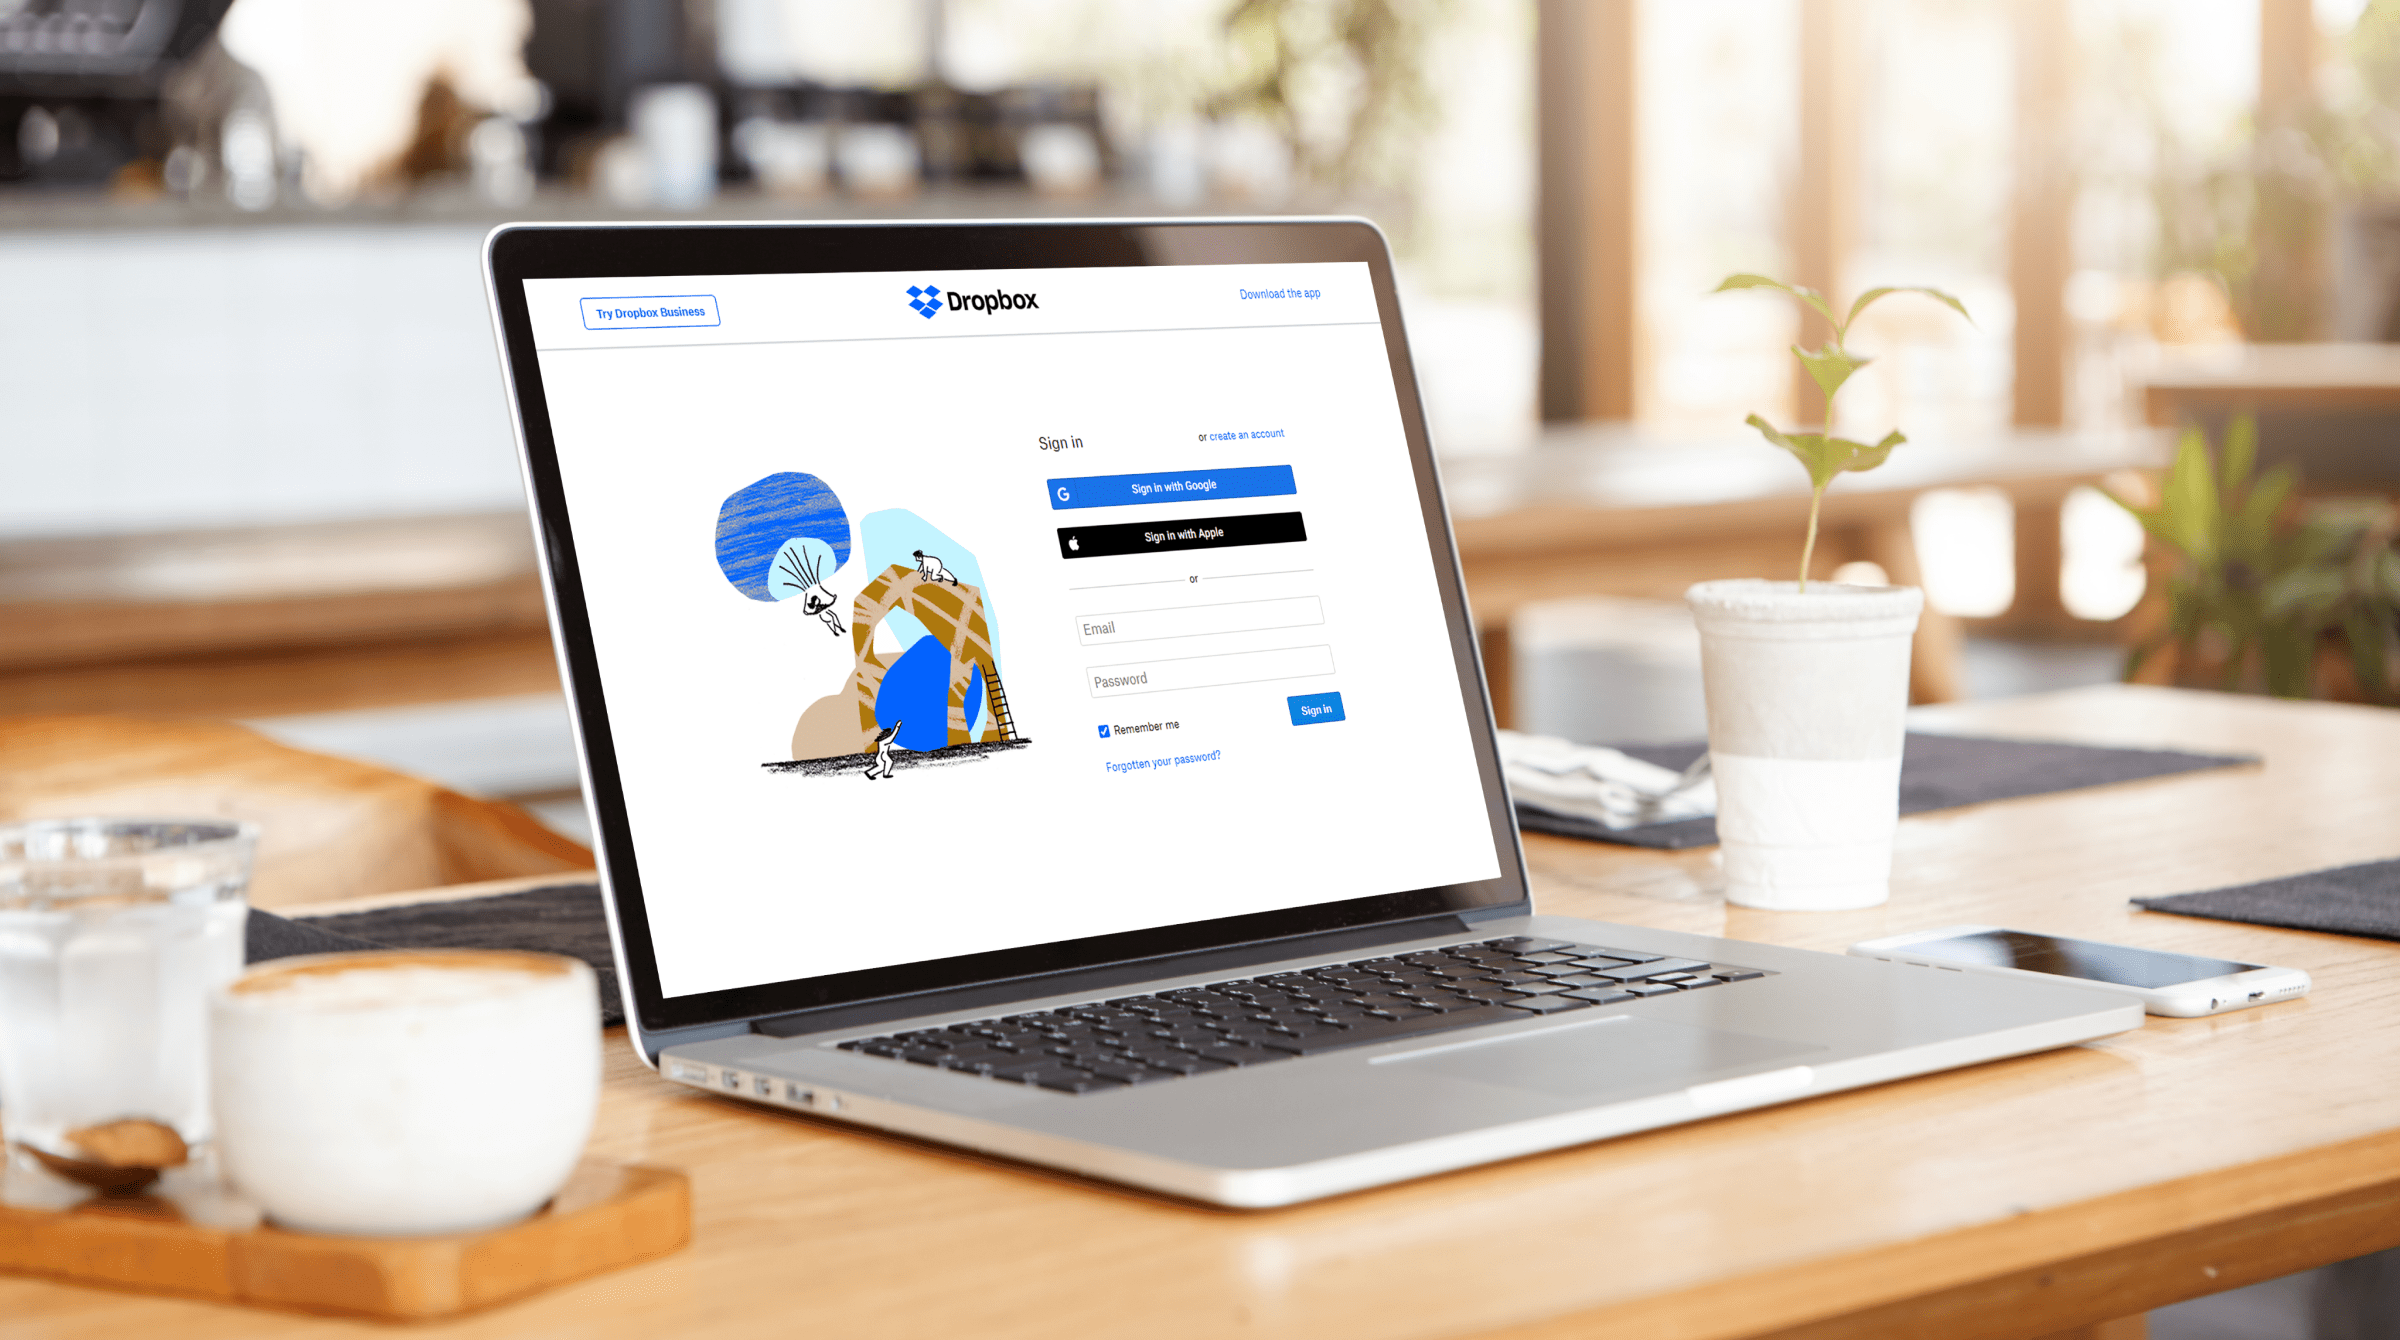 Guide: How To Delete Dropbox Account In A Few Clicks